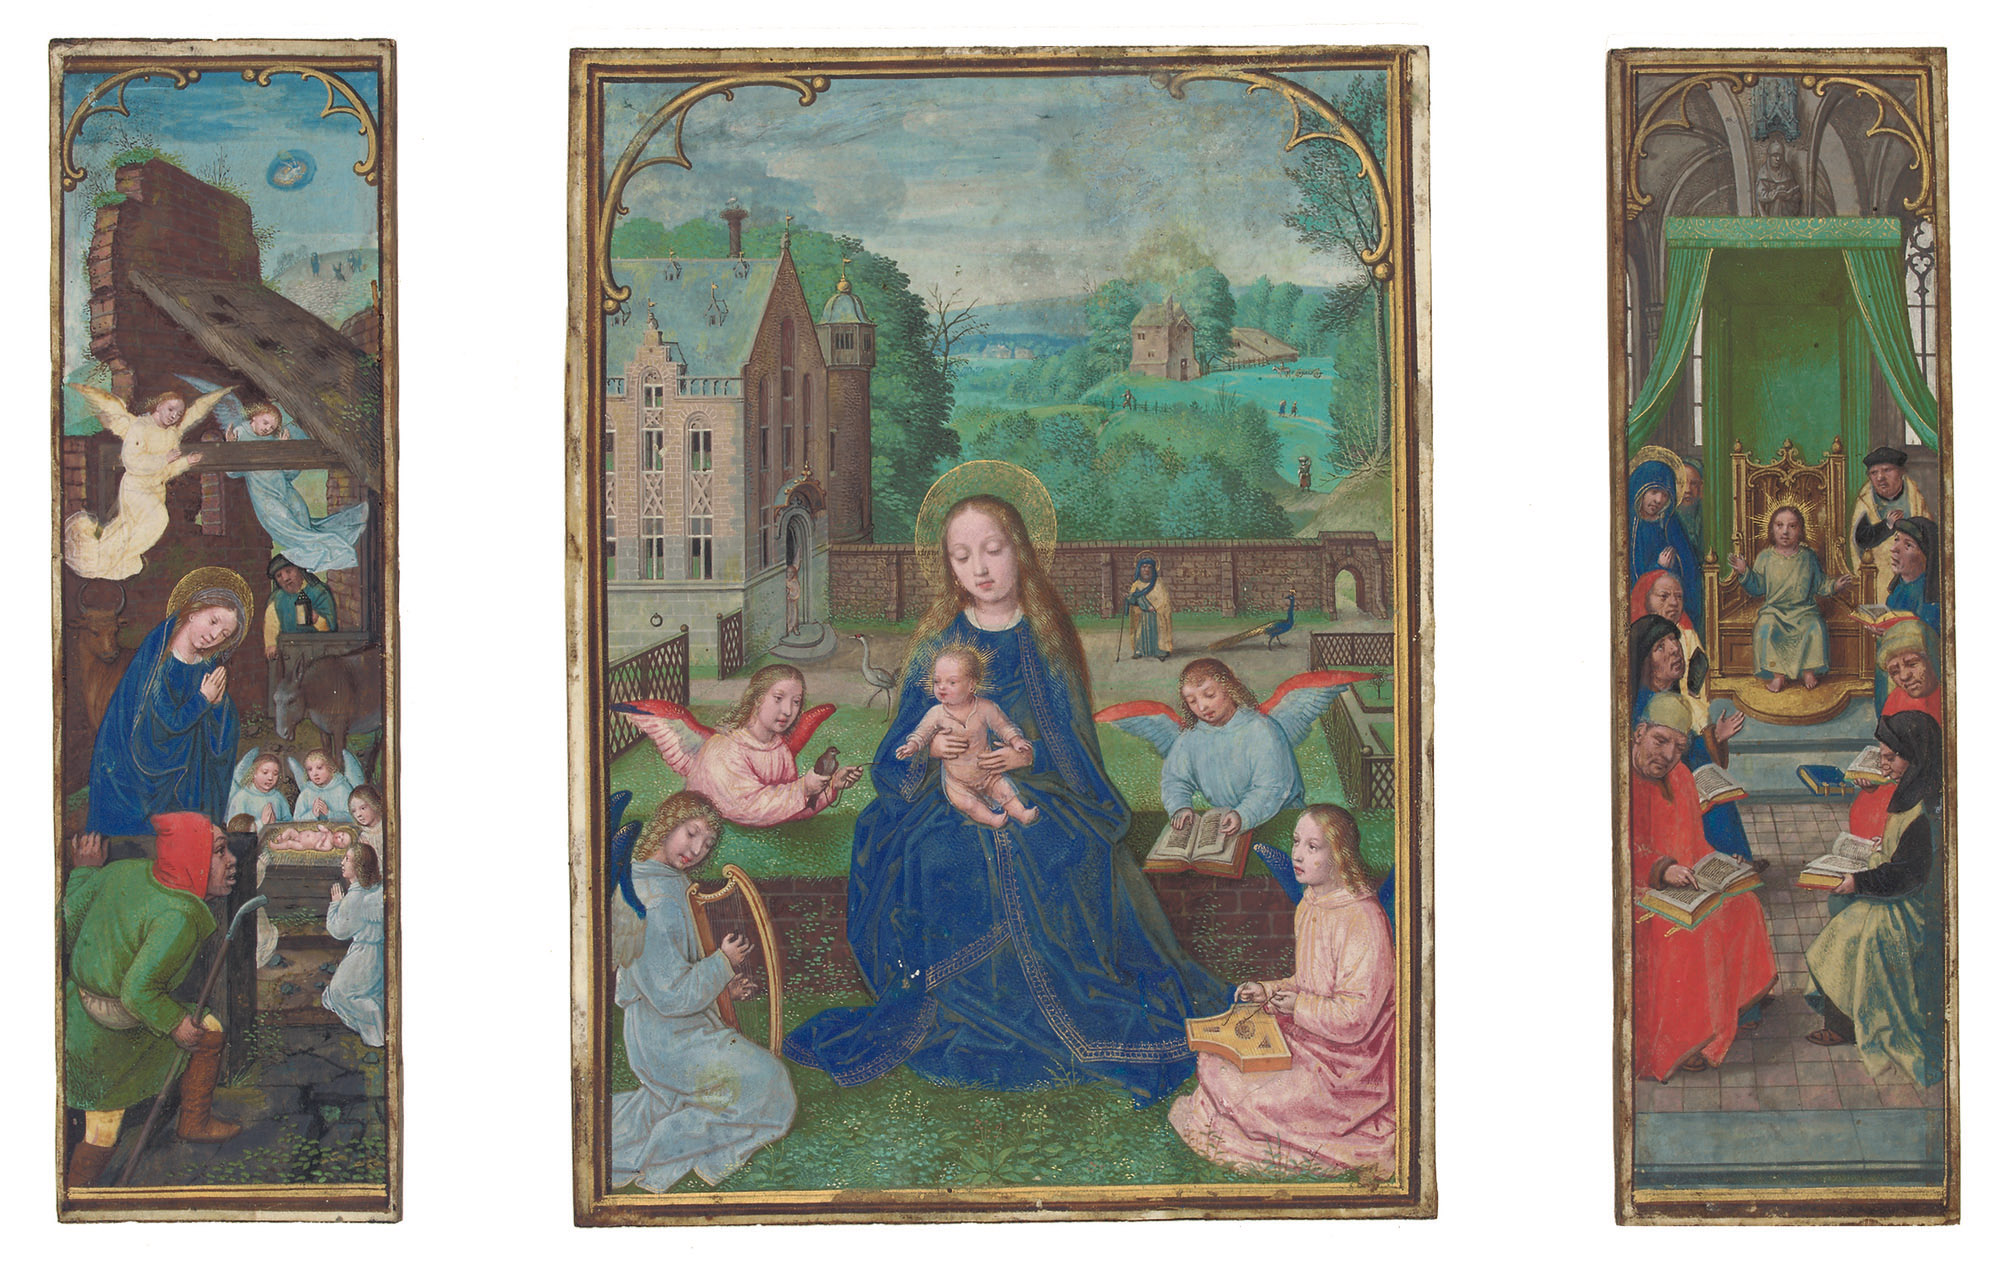 SIMON BENING (1483/84-1561): THE VIRGIN AND CHILD IN A GARDEN between THE NATIVITY and CHRIST AMONG THE DOCTORS, ILLUMINATED TRIPTYCH ON VELLUM ON WOODEN PANELS